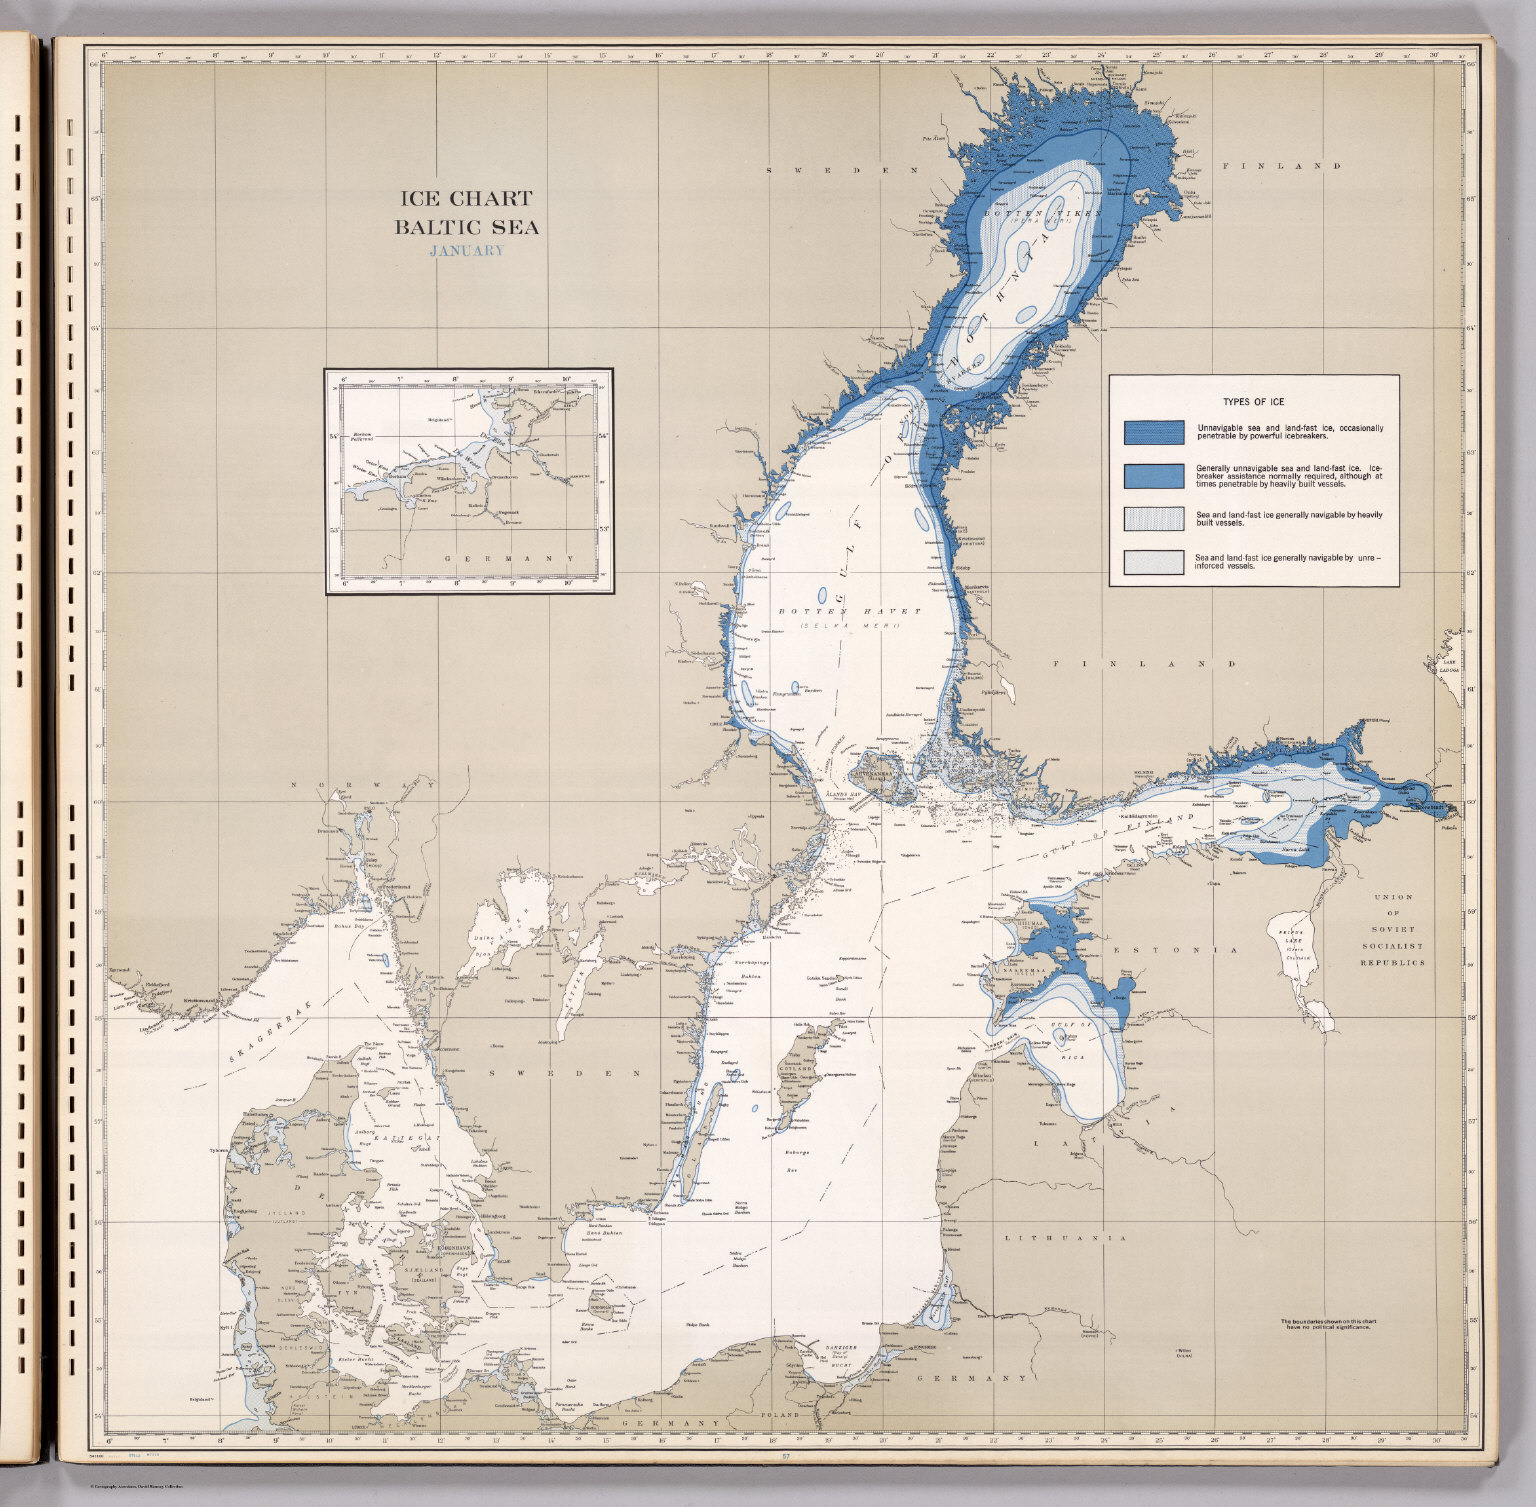 Ice Chart, Baltic Sea, January. - David Rumsey Historical Map Collection